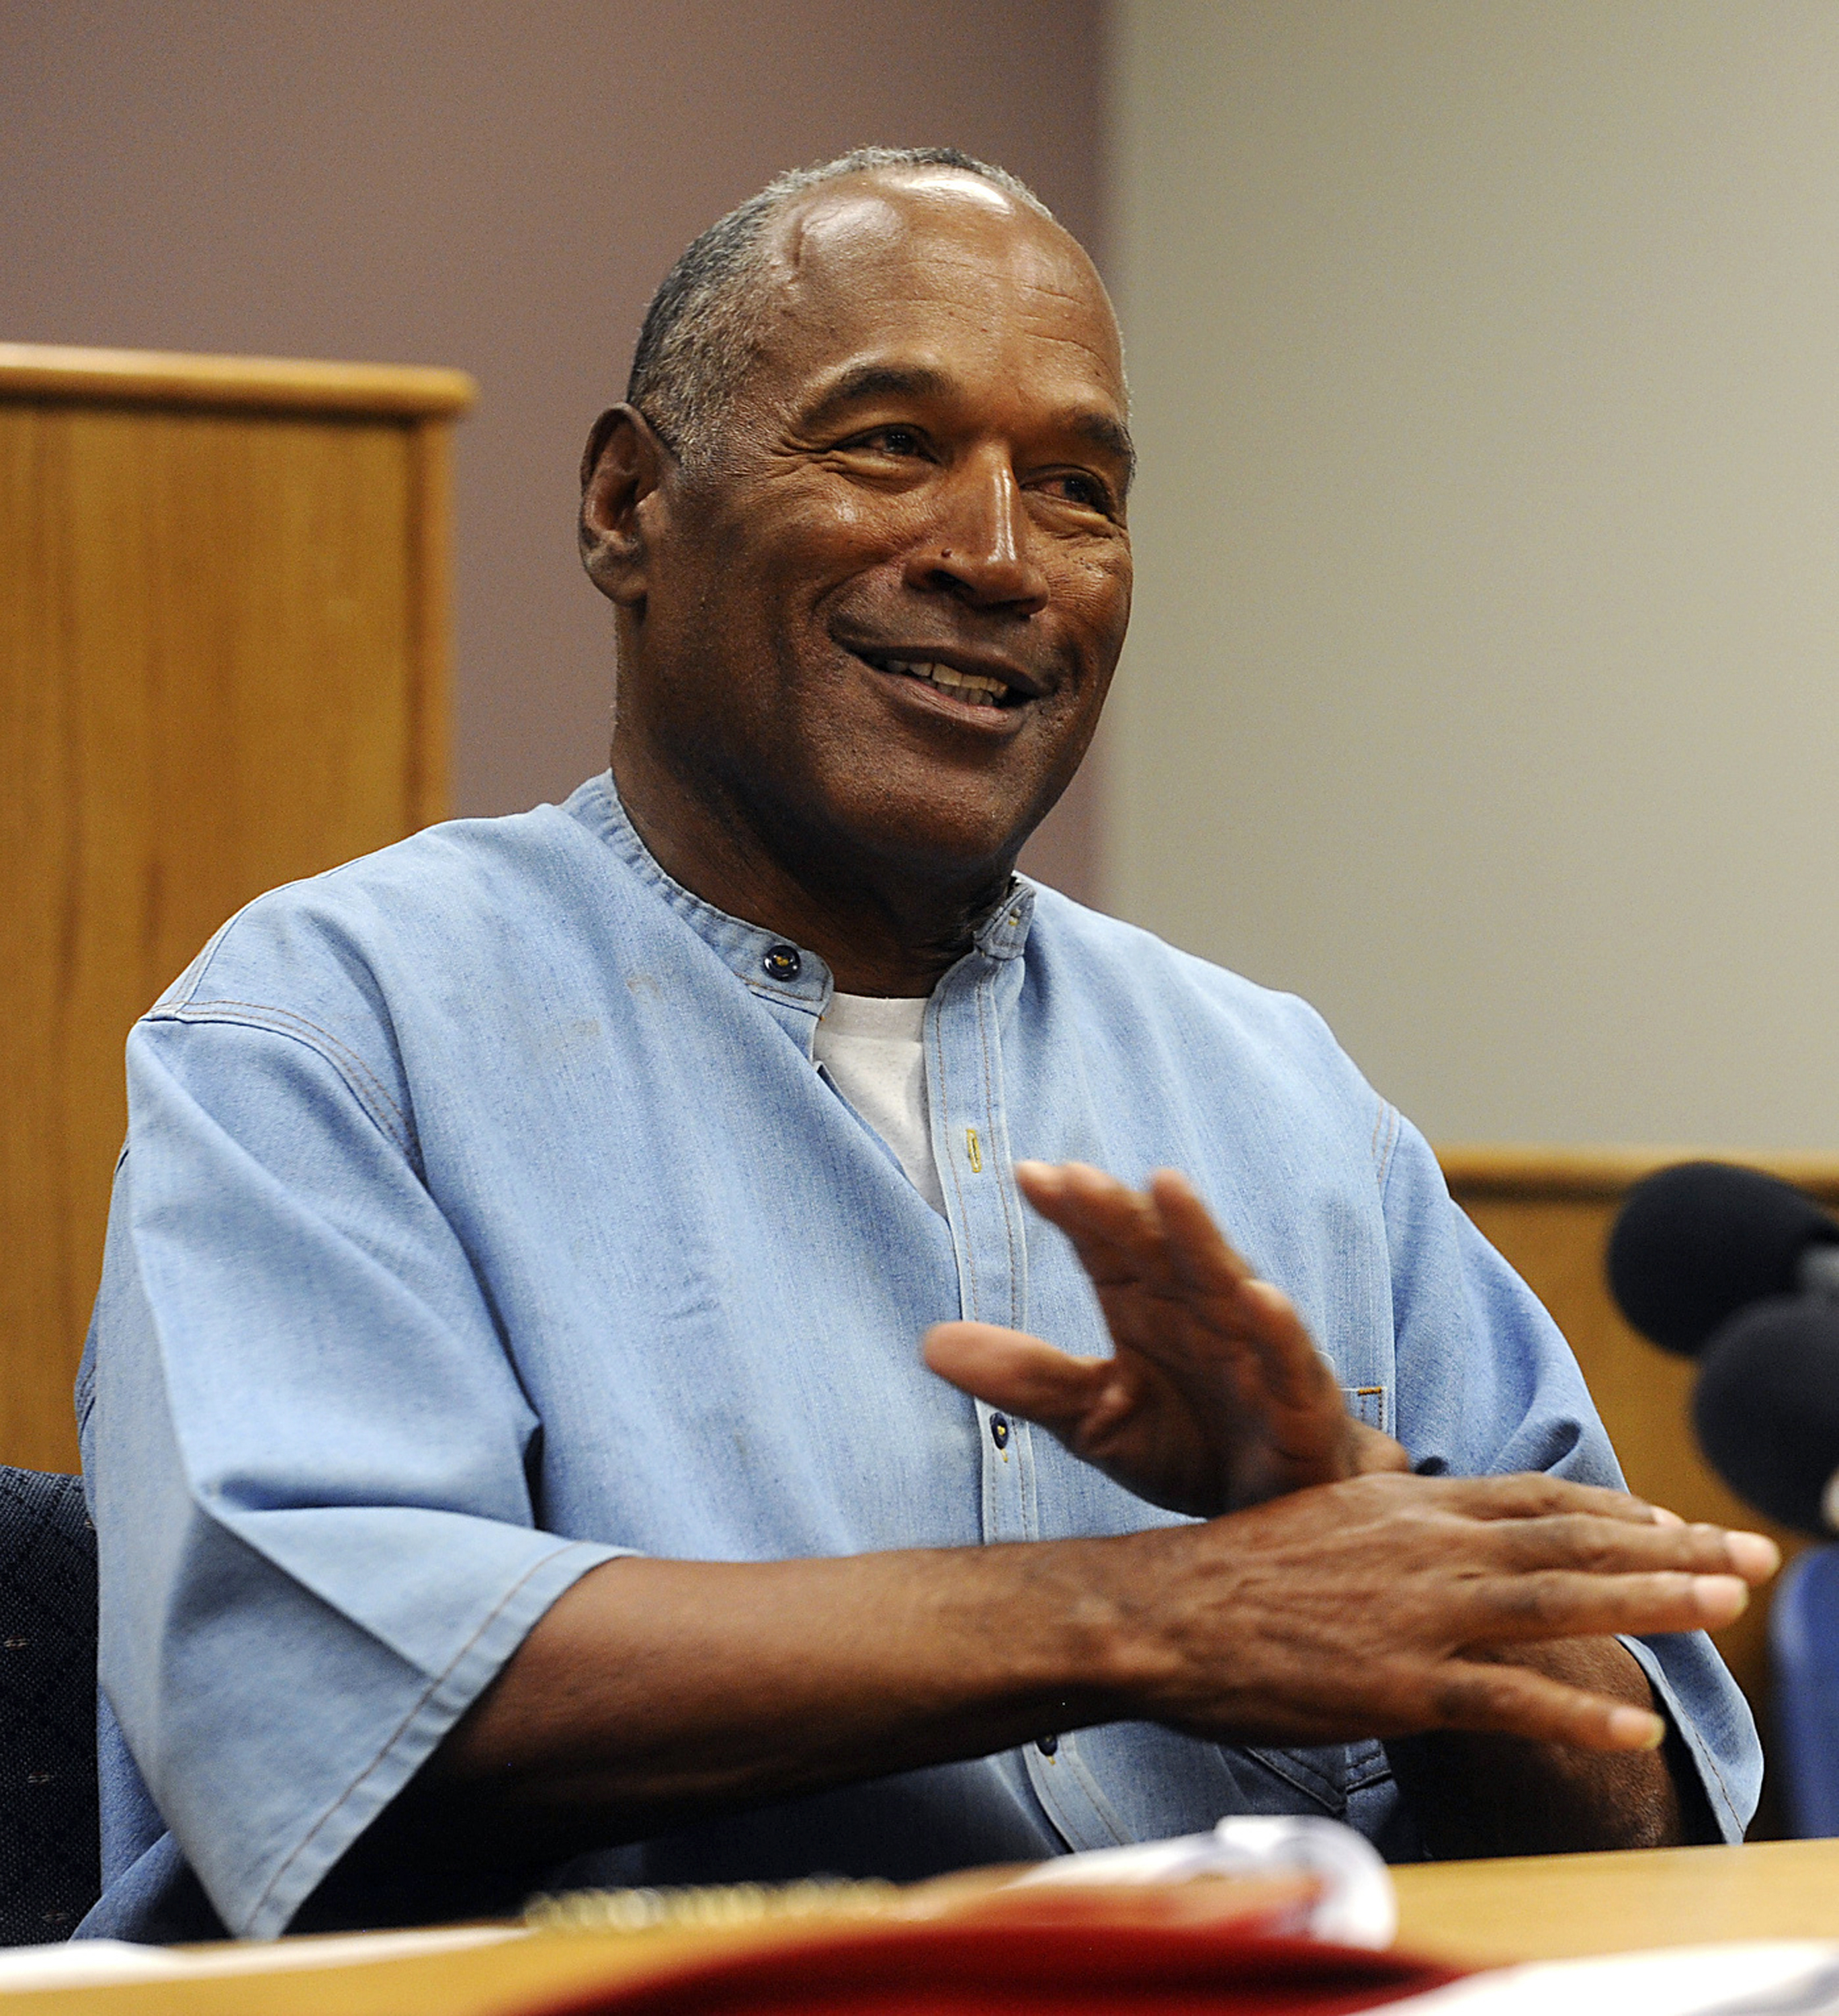 FILE - This July 20, 2017 file photo shows former NFL football star O.J. Simpson at his parole hearing at the Lovelock Correctional Center in Lovelock, Nev. Simpson was granted parole after more than eight years in prison for a Las Vegas hotel heist. A Nevada prison official said early Sunday, Oct. 1, 2017, O.J. Simpson, the former football legend and Hollywood star, has been released from a Nevada prison in Lovelock after serving nine years for armed robbery.  (Jason Bean/The Reno Gazette-Journal via AP, Pool, File)